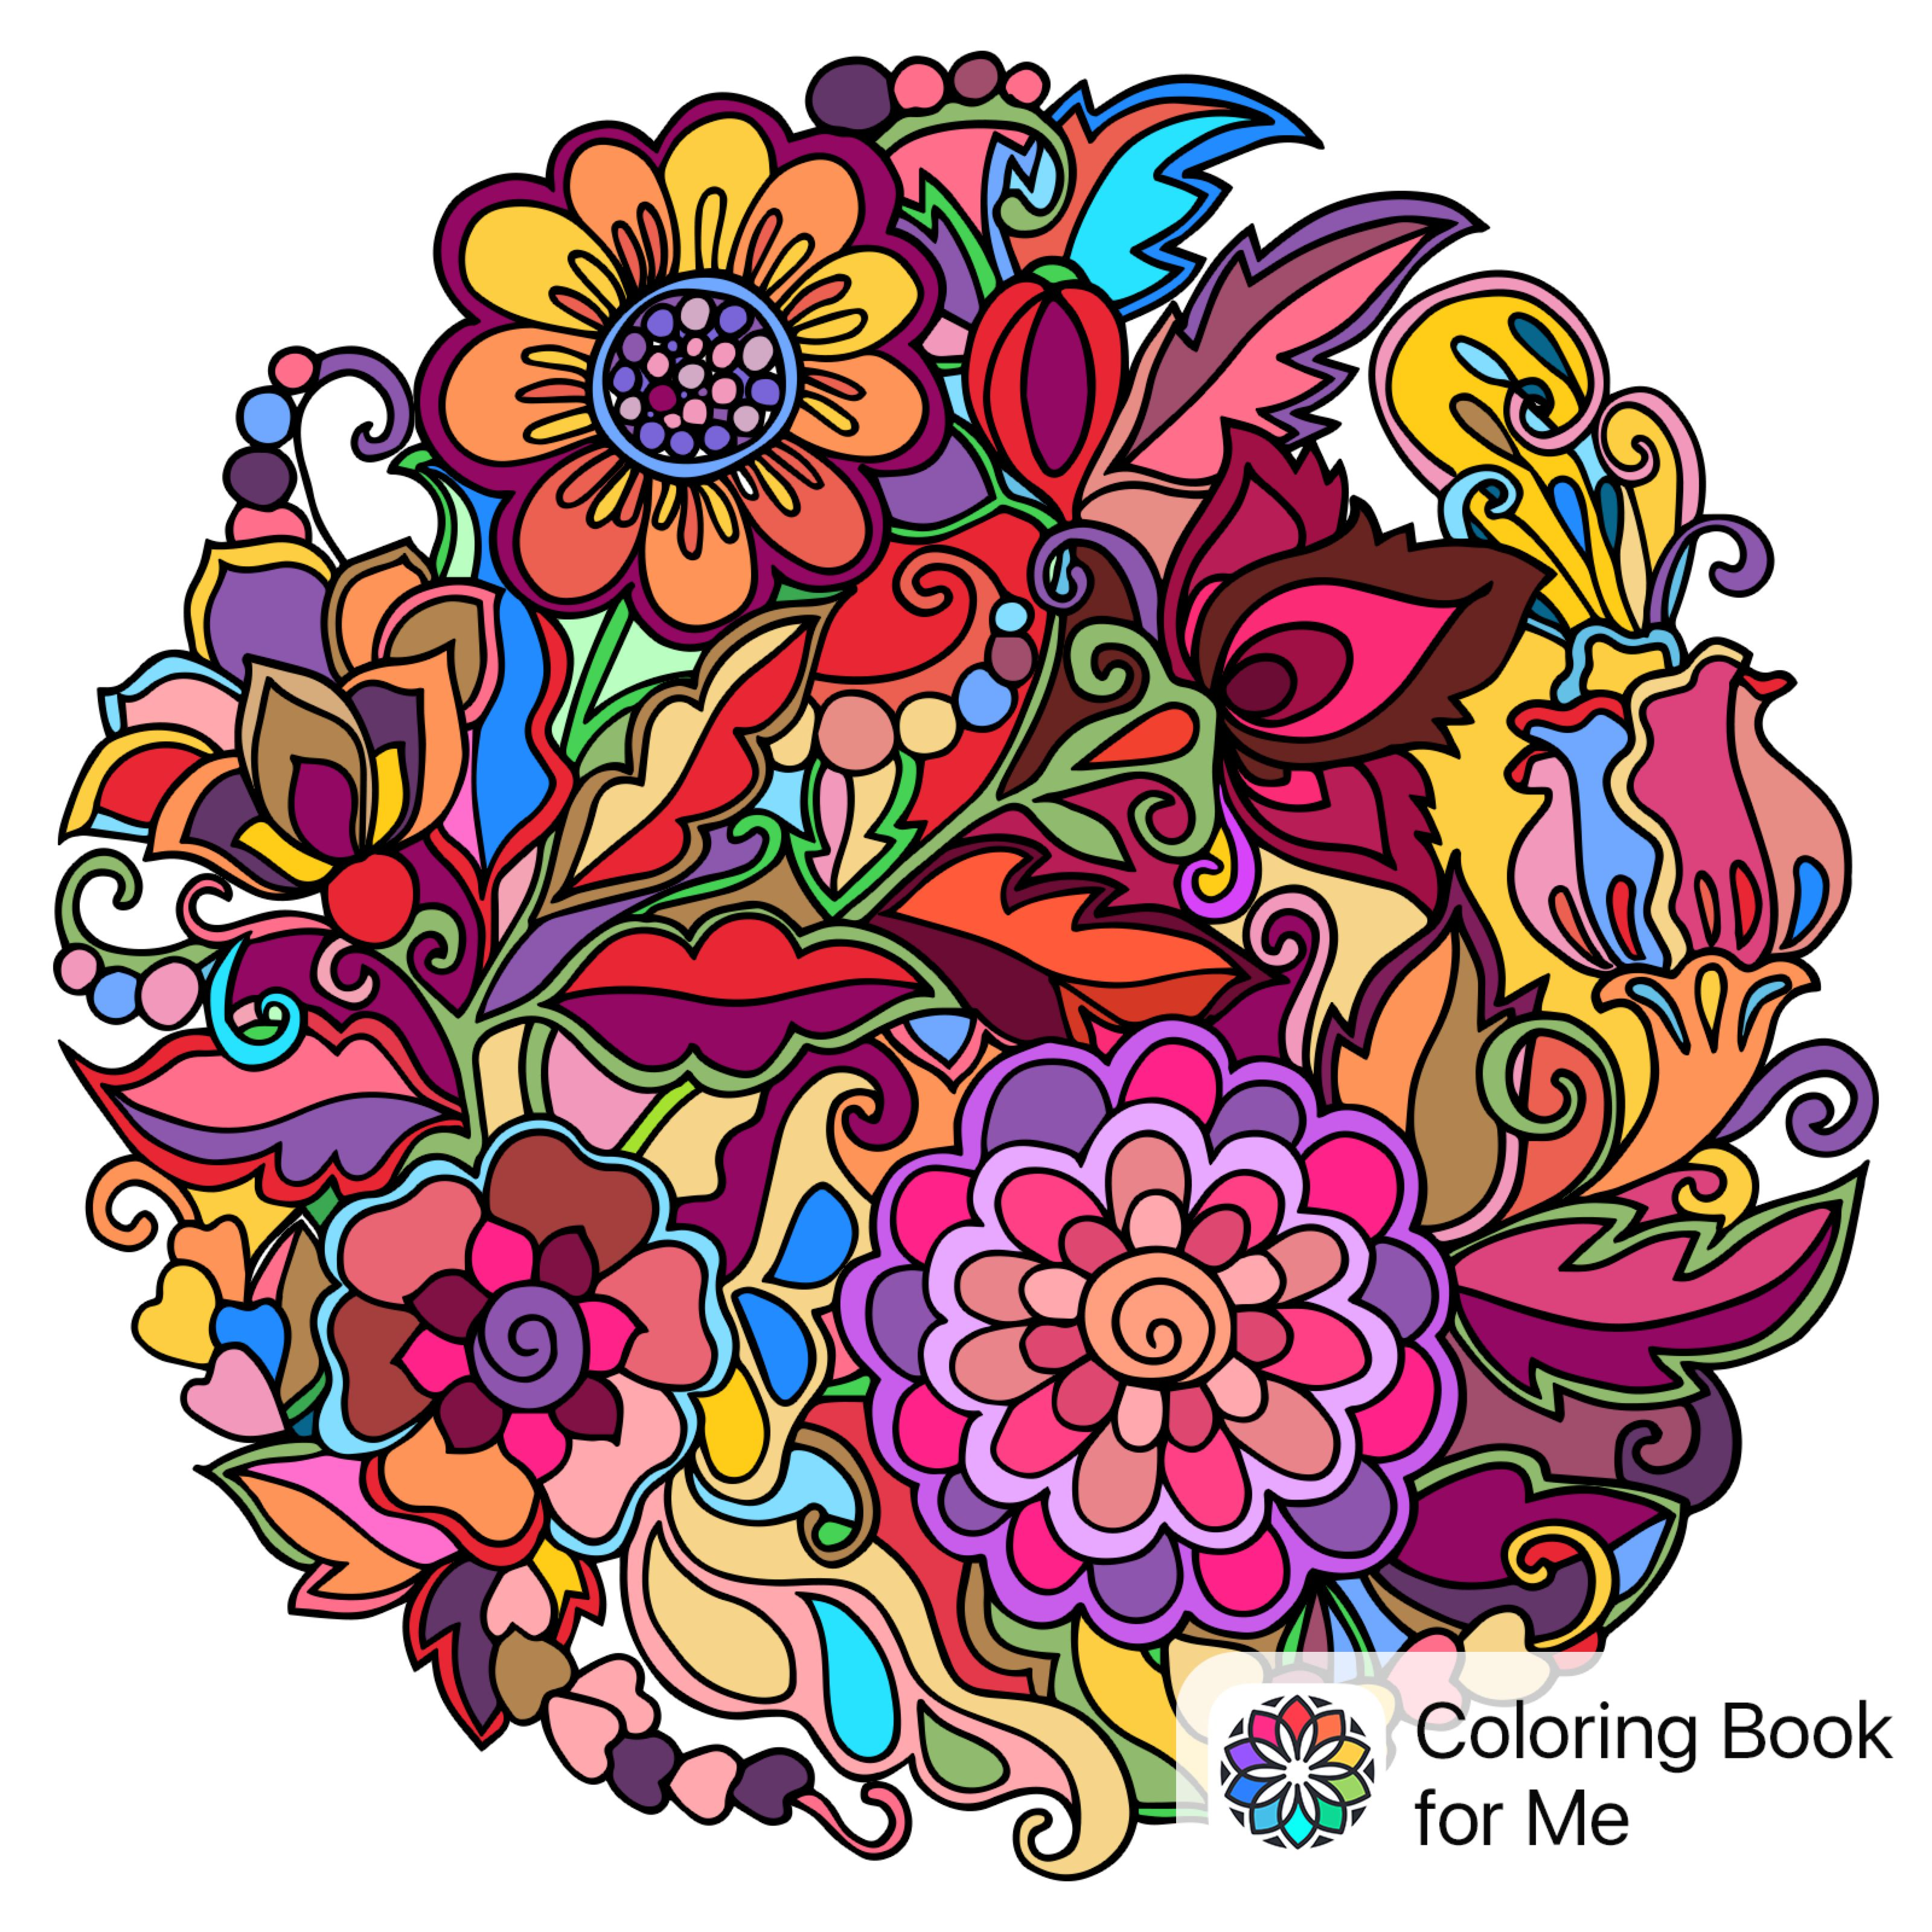 Colored With Colouring Book For Me Coloring Books Color Art Drawings